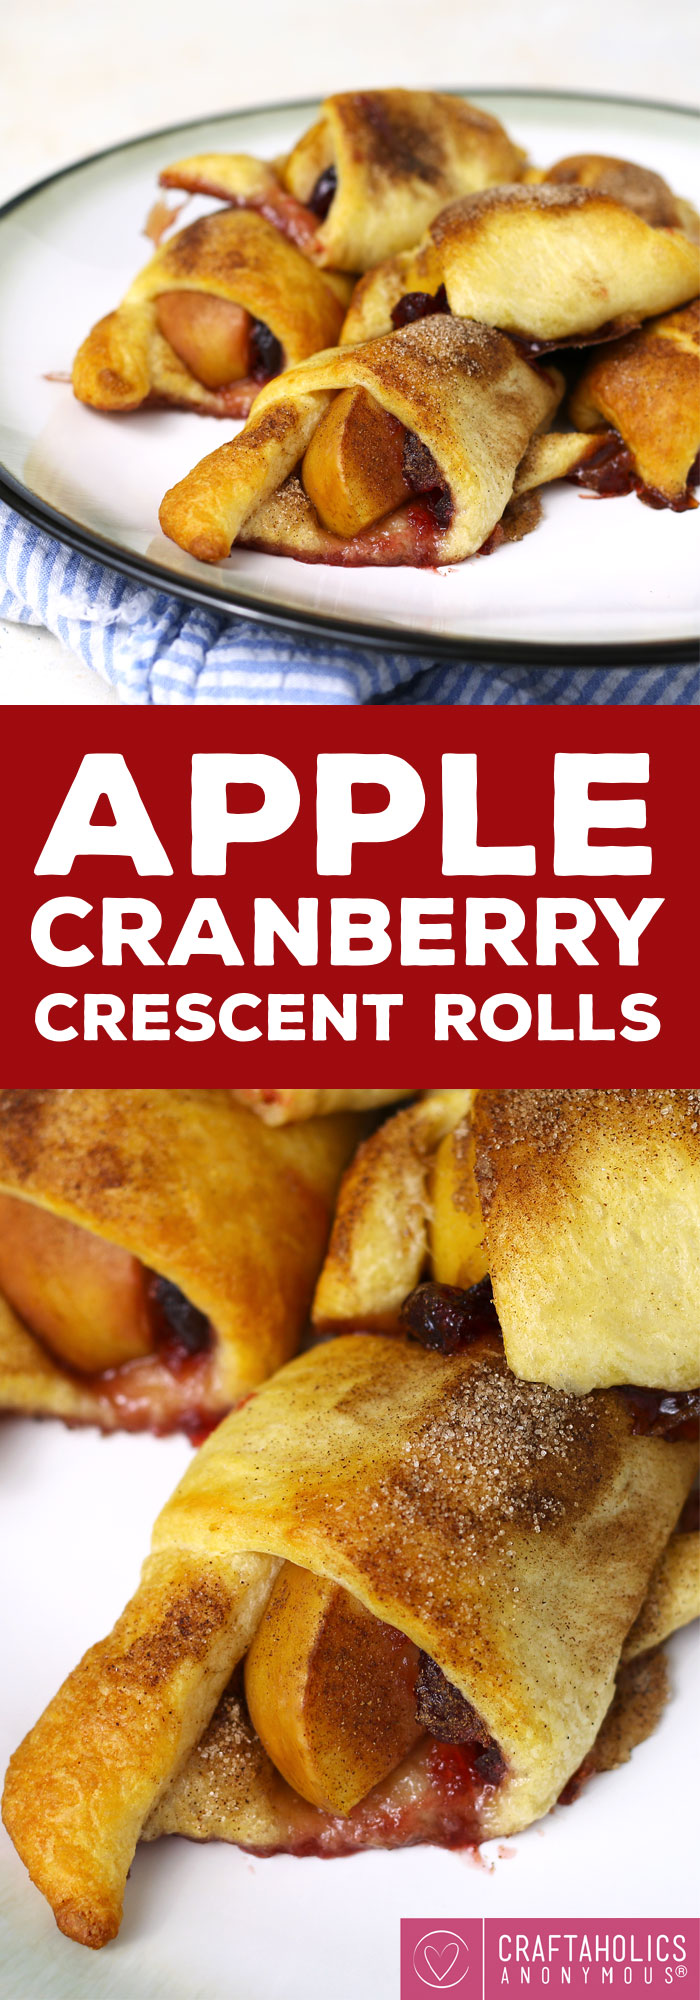 apple-cranberry-crescent-roll-pin